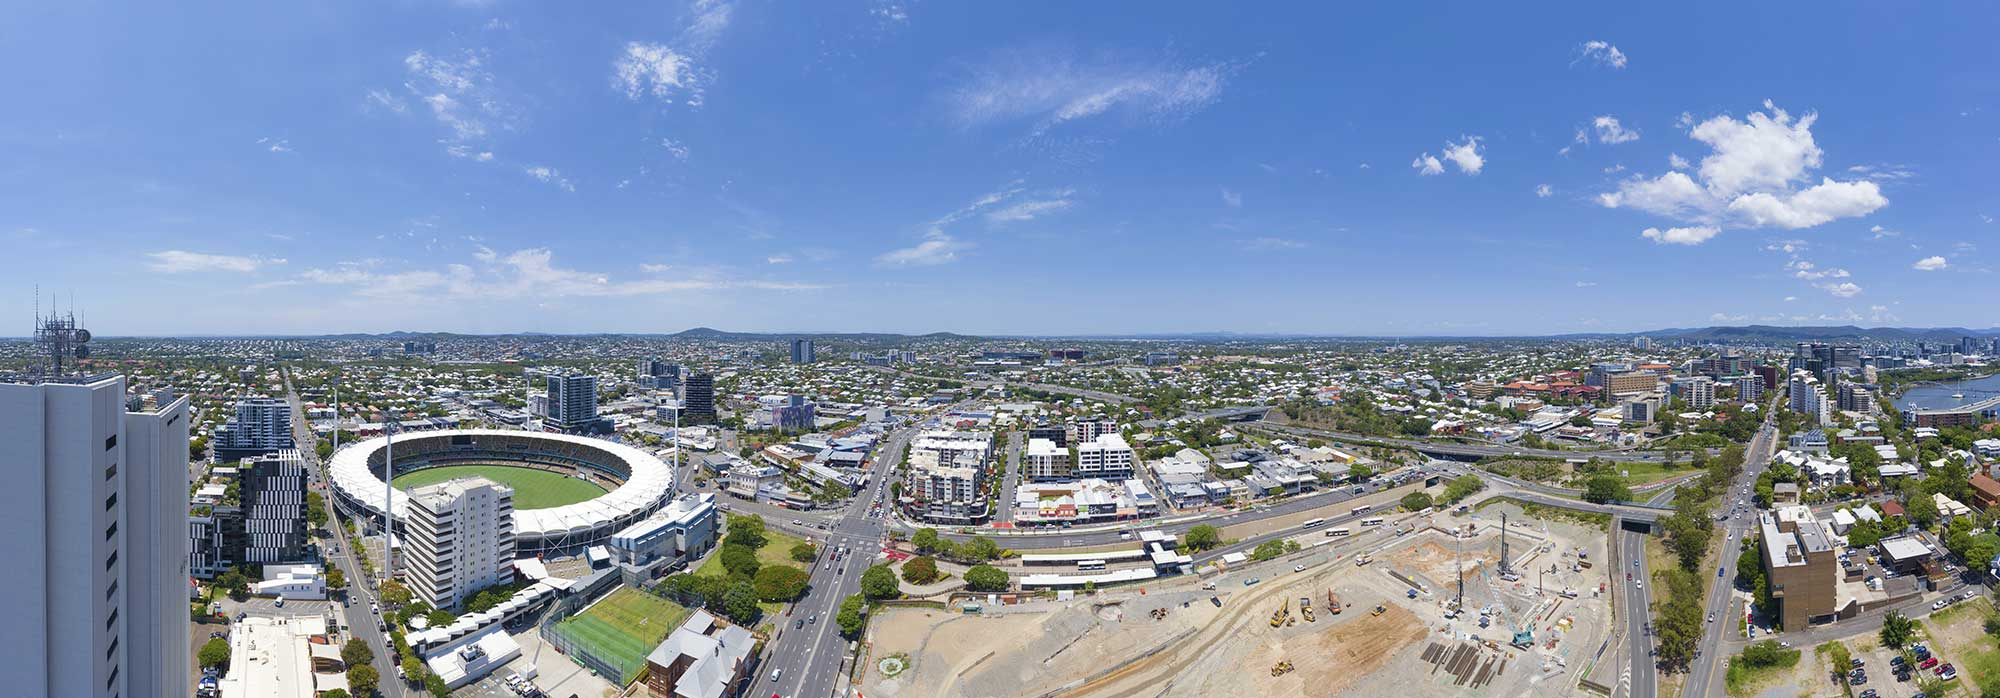 Vulture St drone panorama